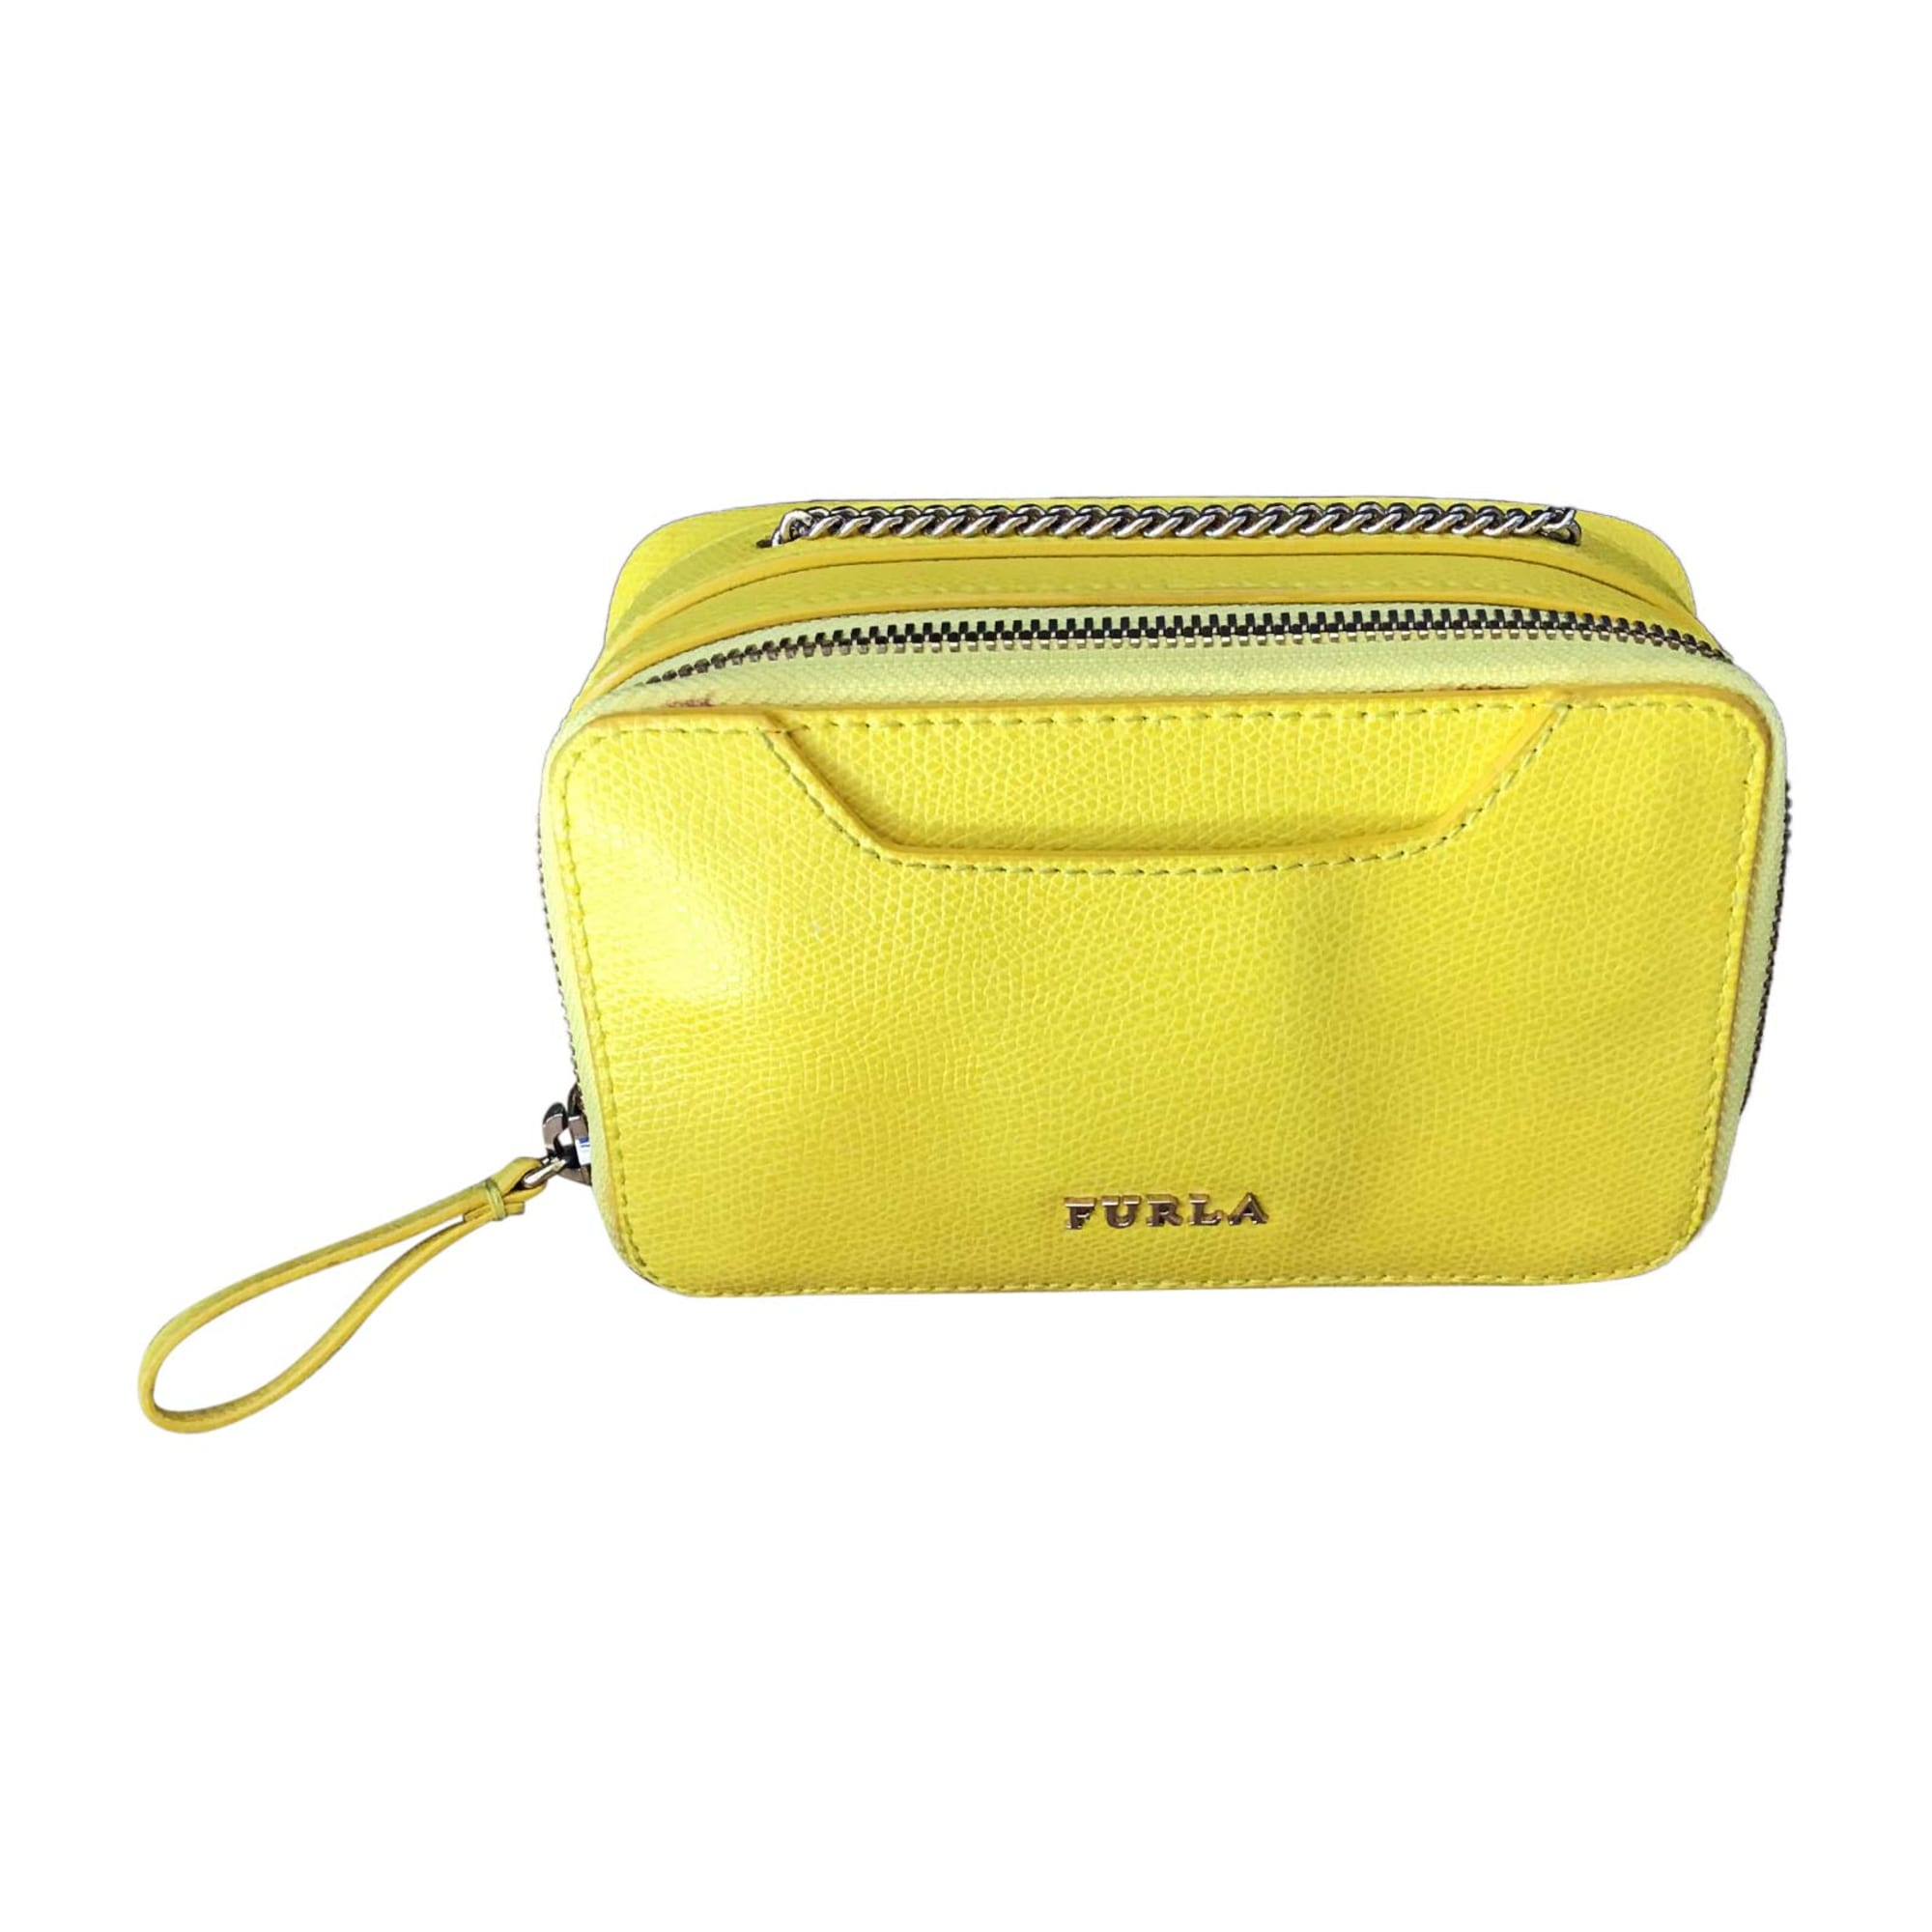 Leather Shoulder Bag FURLA Yellow